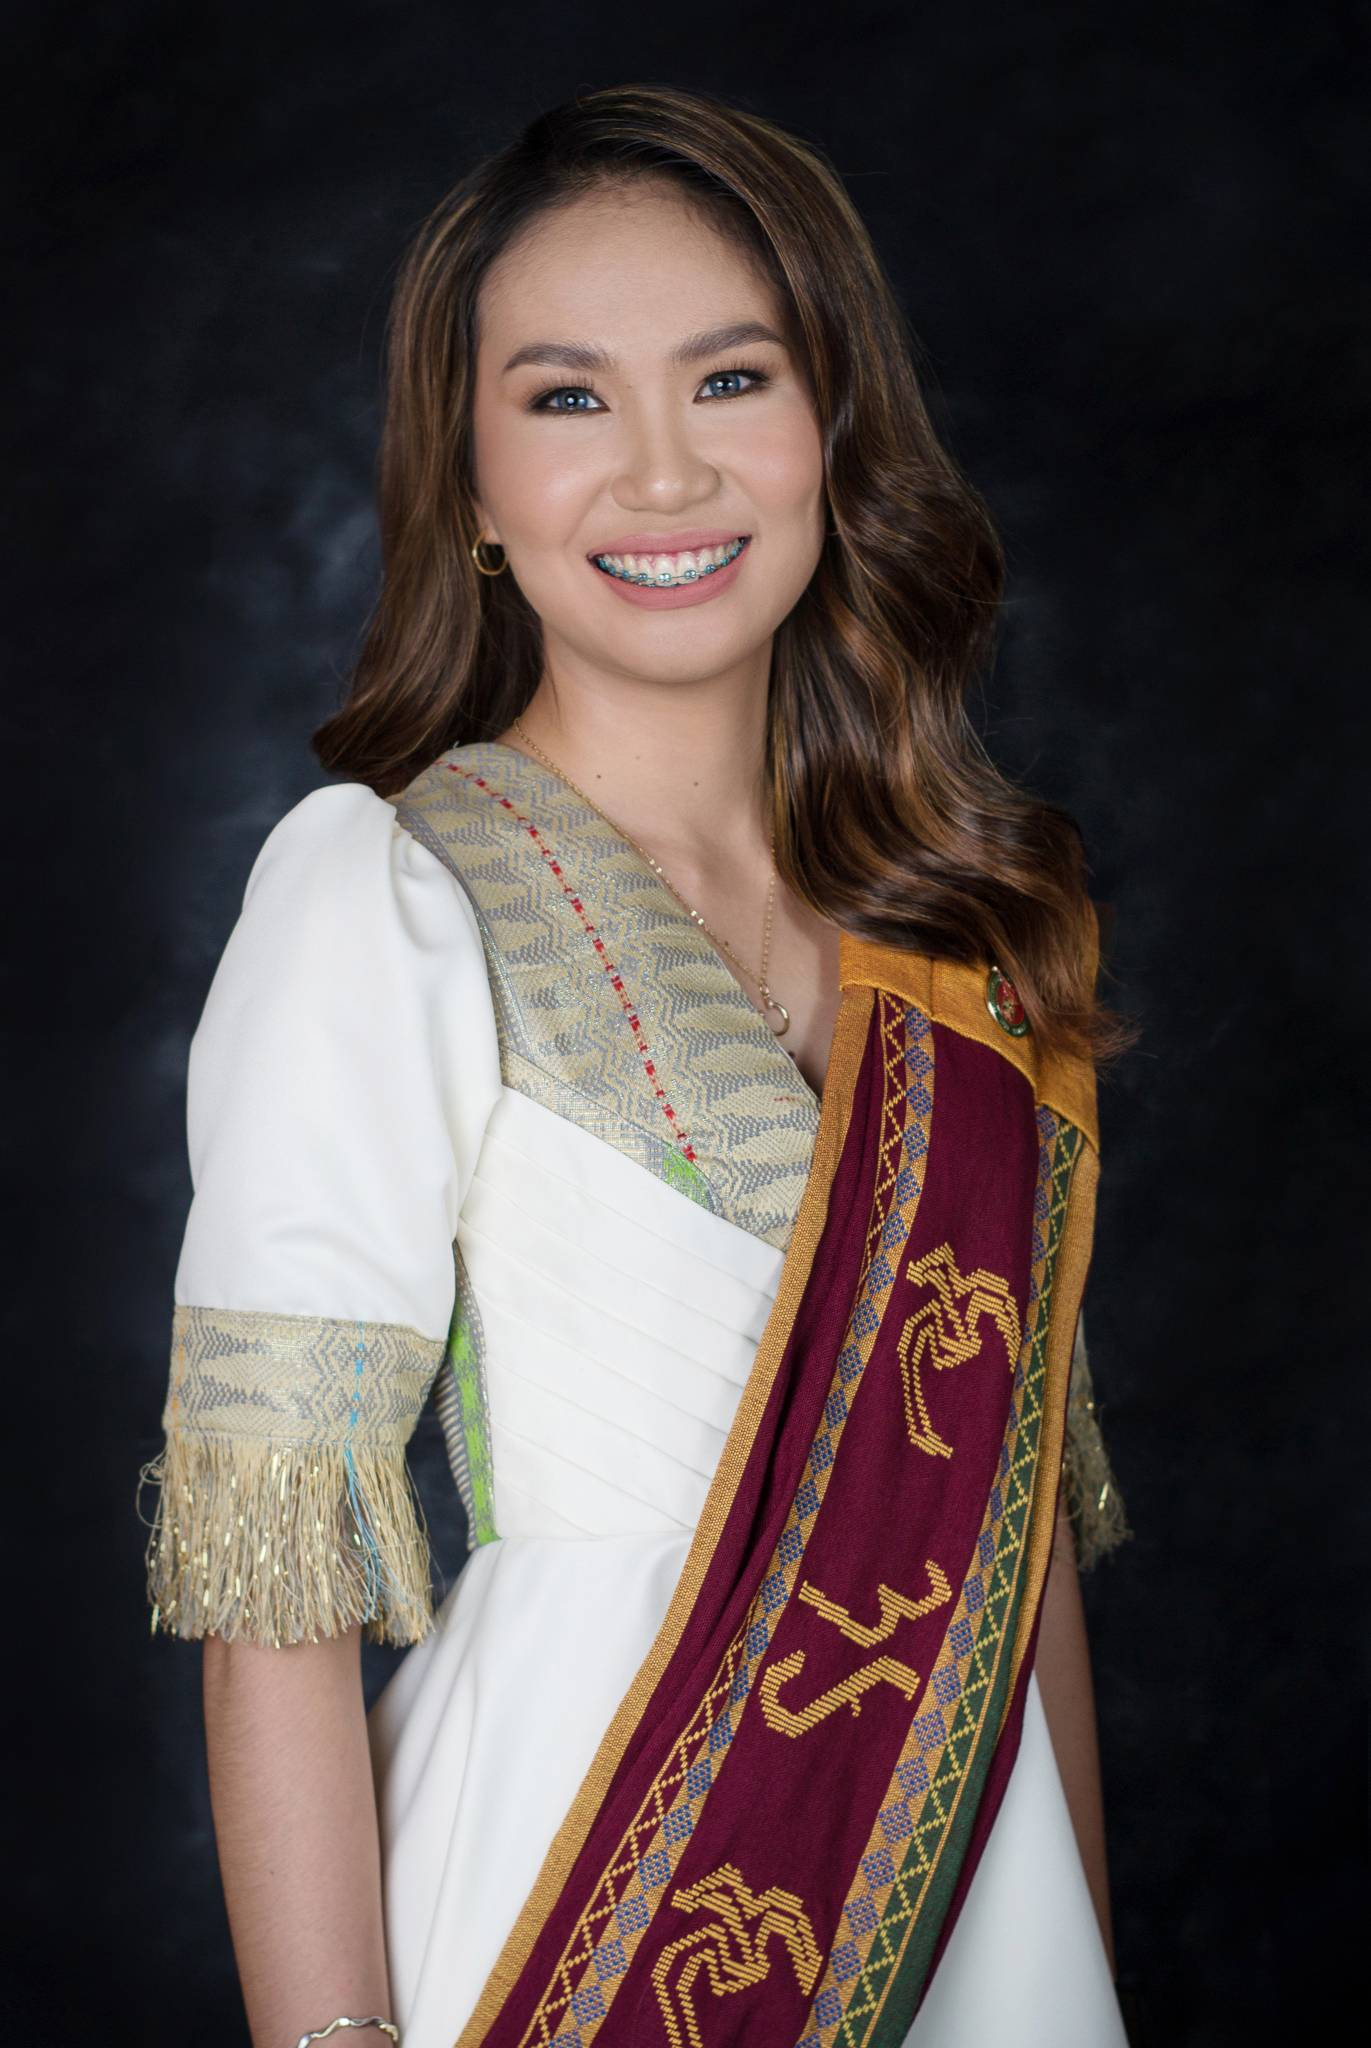 Our Geologist earns her Diploma on Urban and Regional Planning (DURP) at the University of the Philippines (UP)